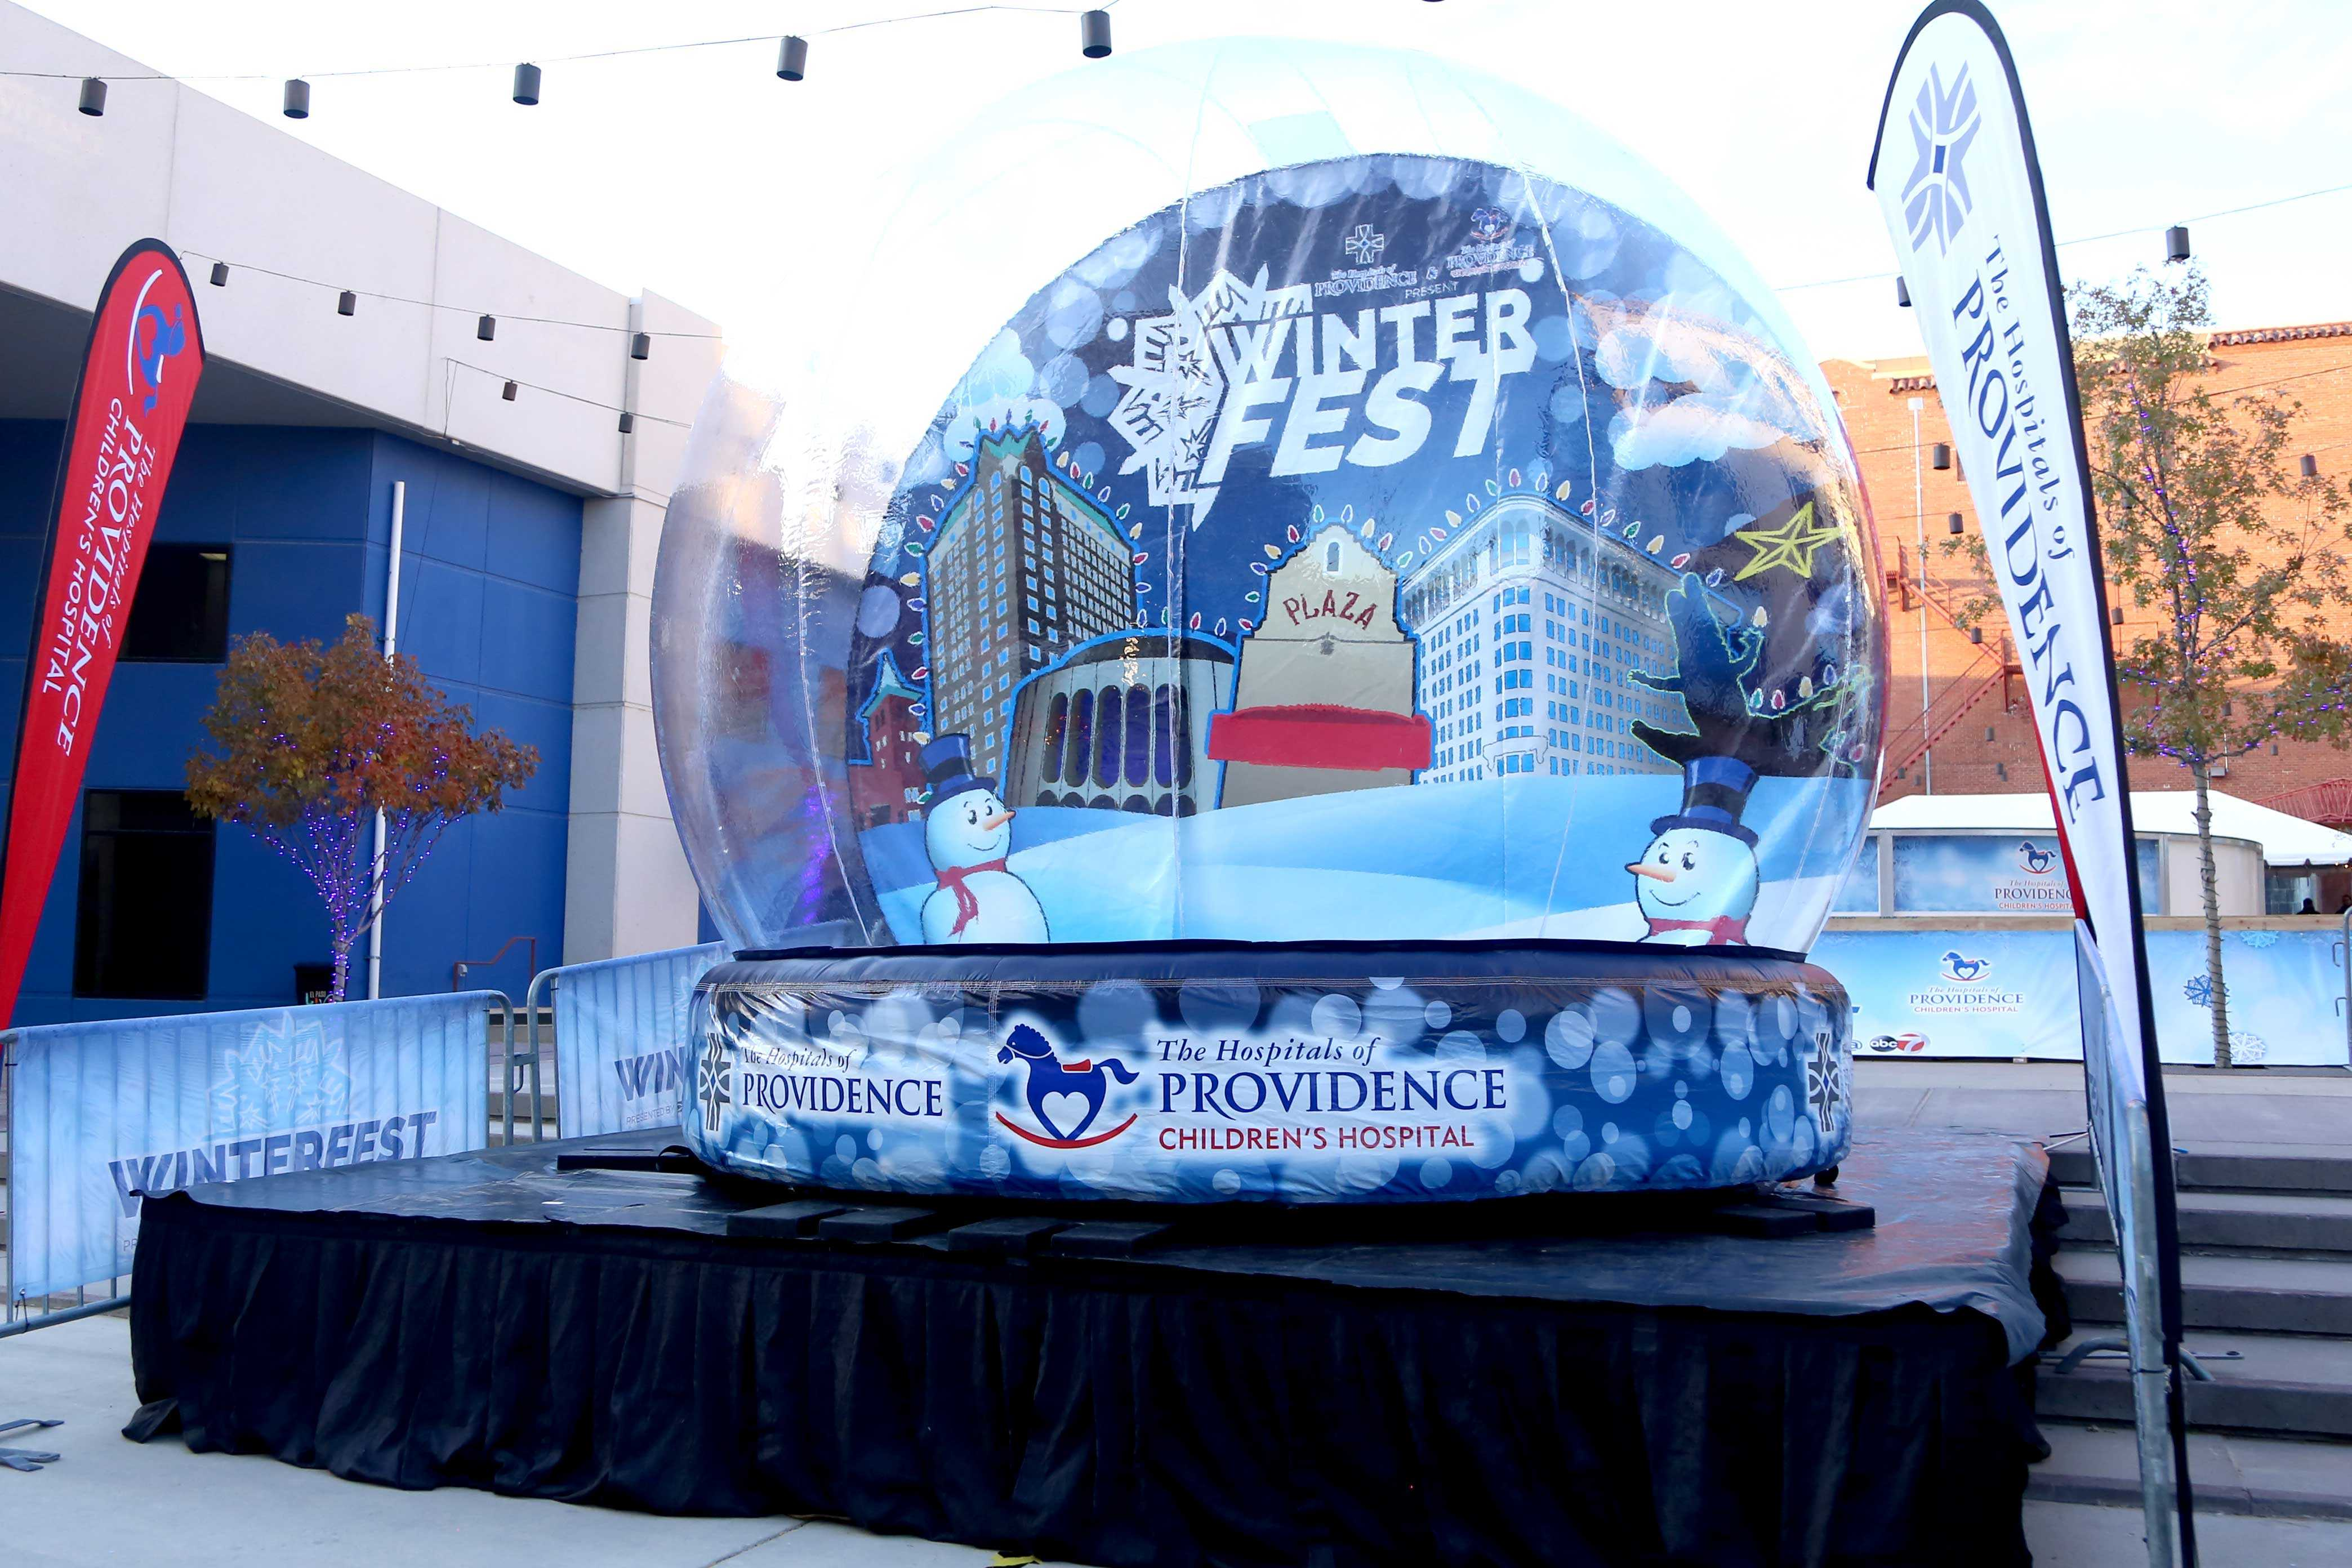 A+life+size+snow+globe+will+be+available+for+people+to+take+photos+in.+